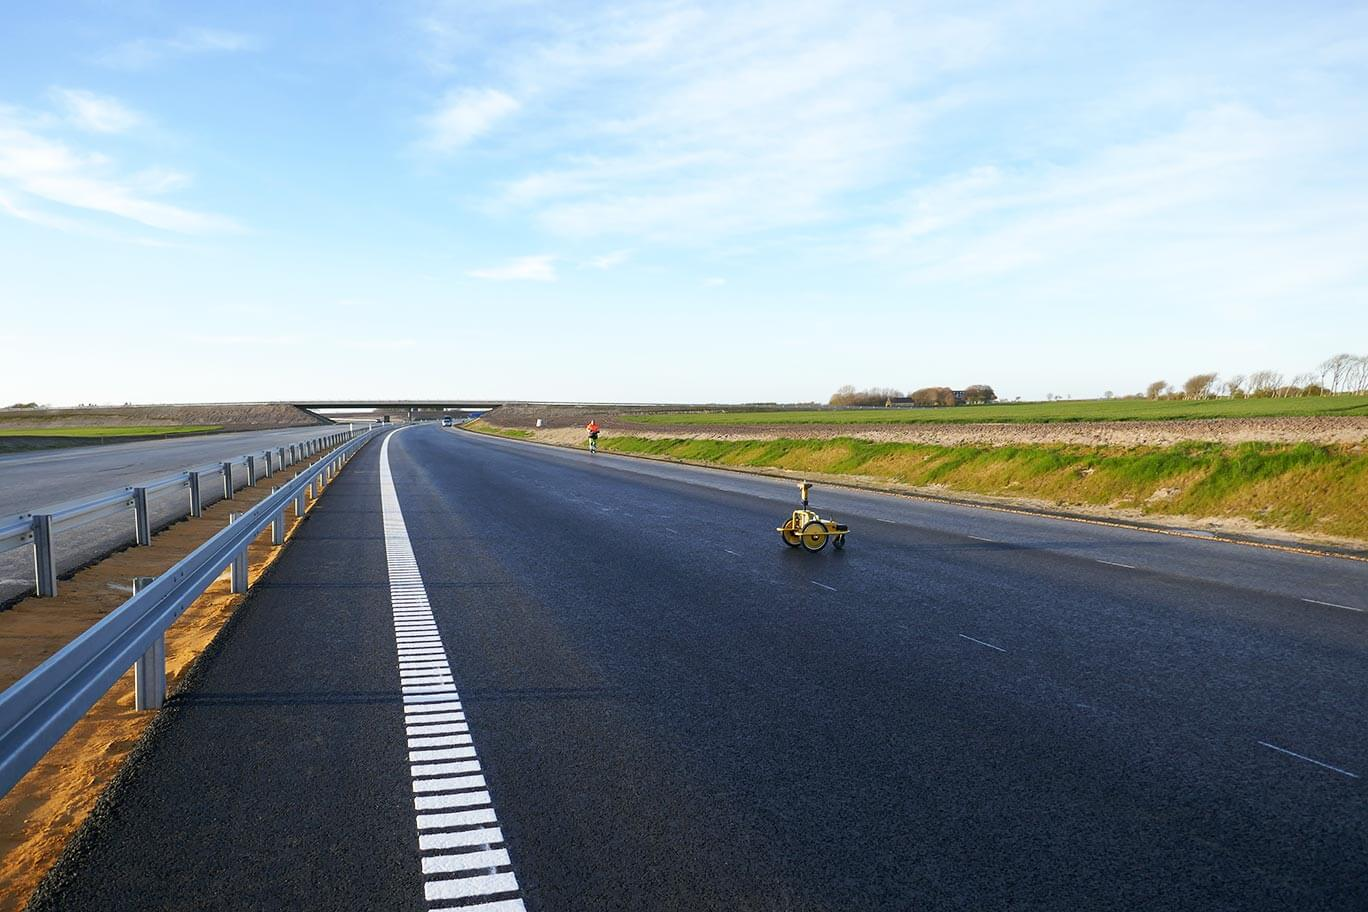 Road marking robot for pre-marking new roads